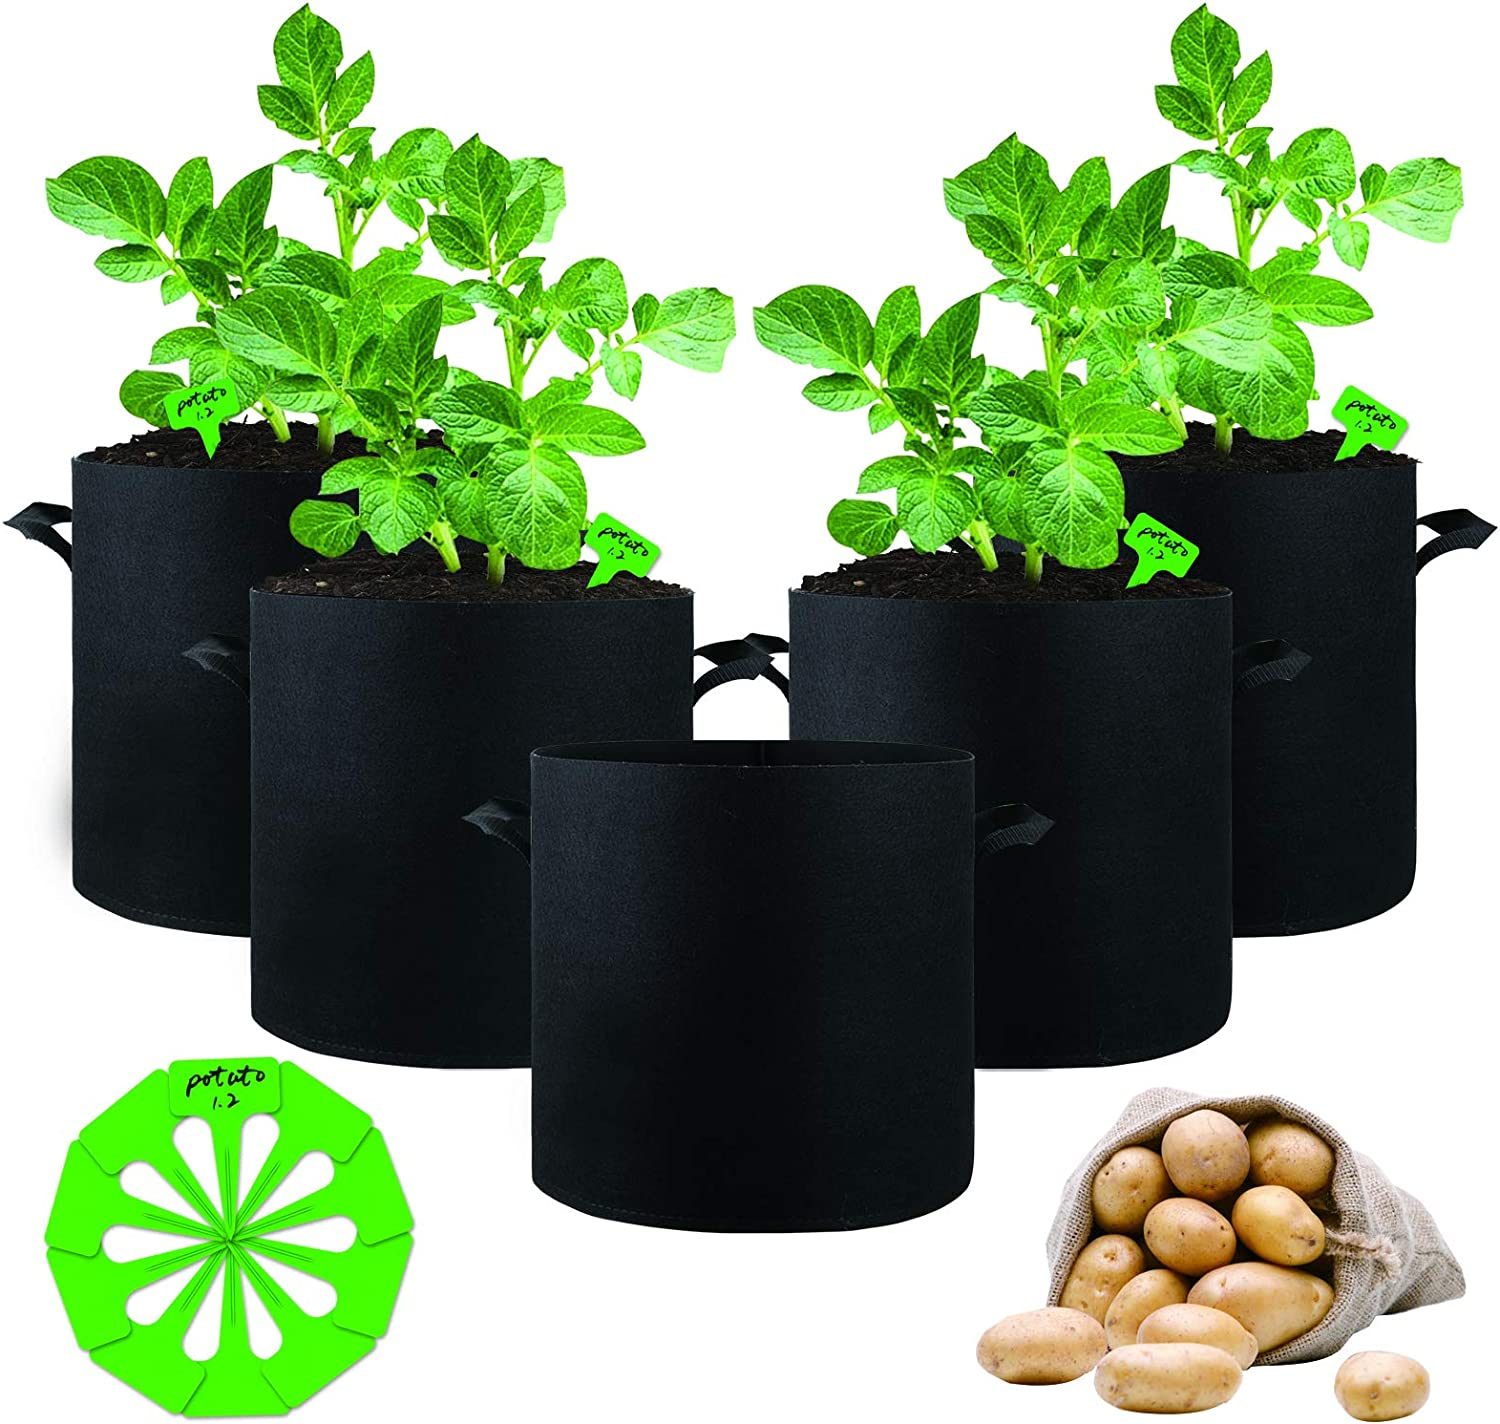 5-Pack 5 Gallon Grow Bags, Potato Grow Bags Heavy Duty Thickened Nonwoven Fabric Grow Pots with Handles Garden Planter Grow Bags Indoor Outdoor Grow Containers for Tomato Vegetables and Fruits